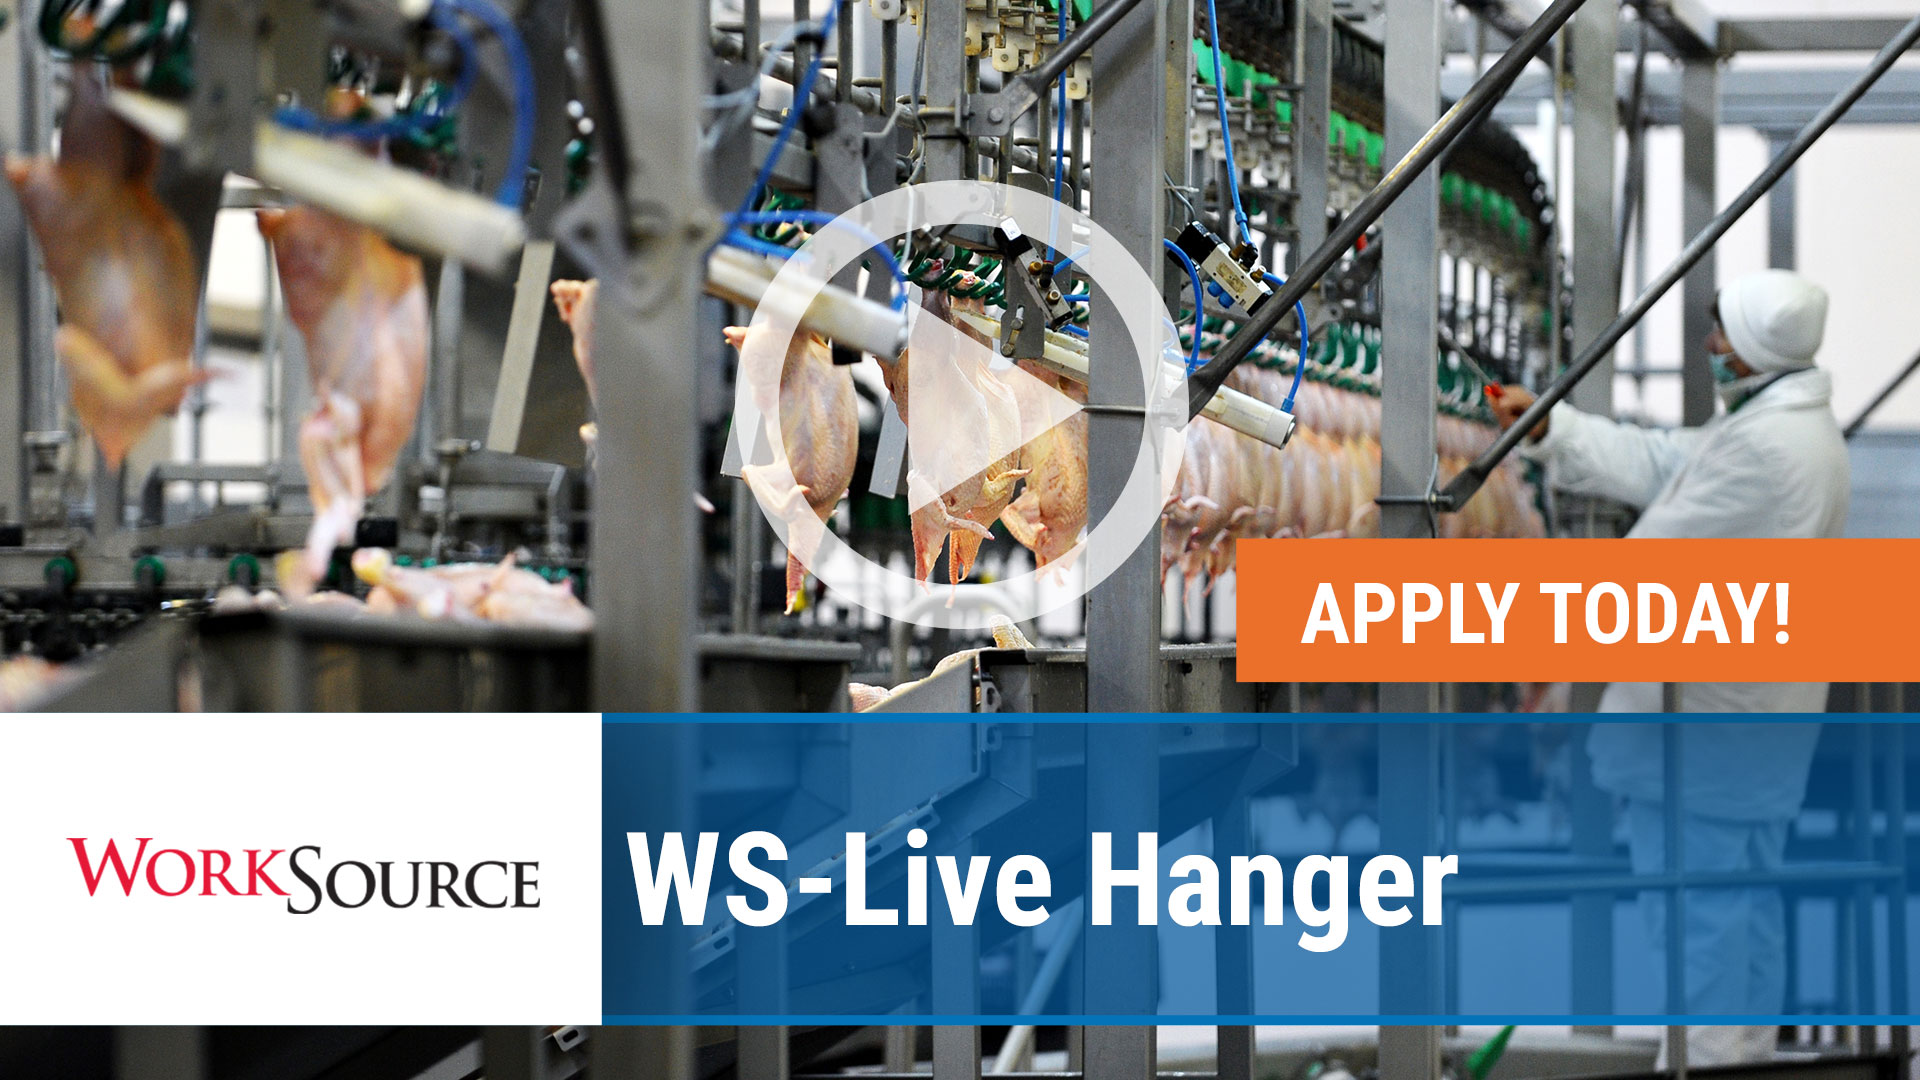 Watch our careers video for available job opening WS Live Hanger in Danville, Arkansas